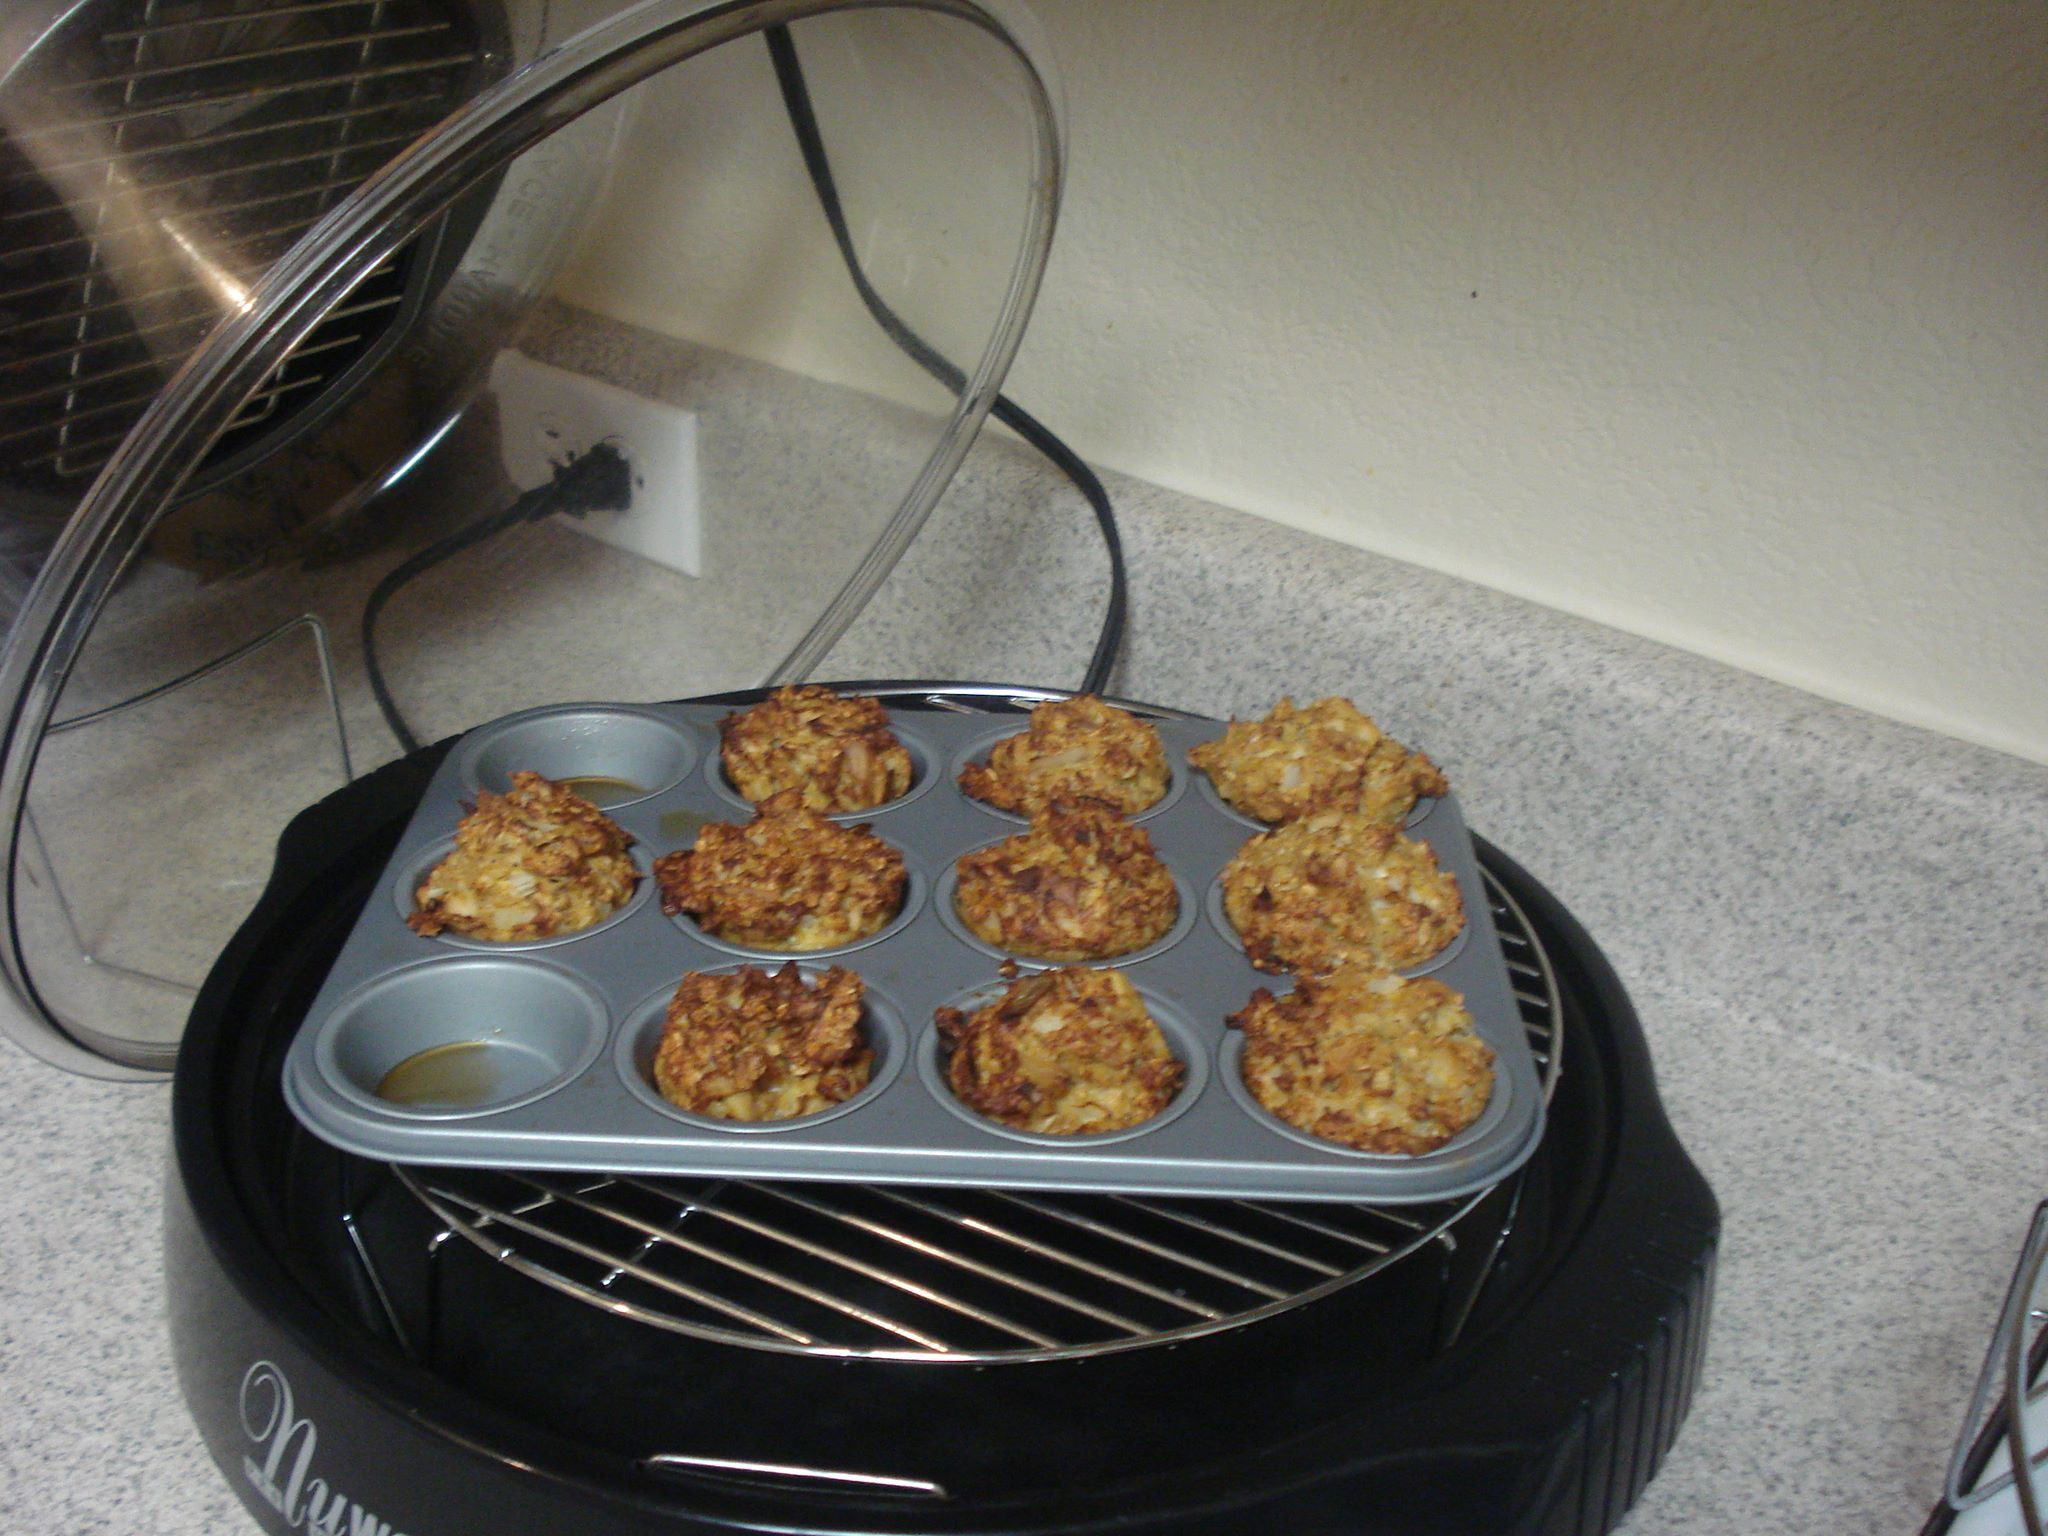 Michelle D. used her NuWave Oven to make Tuna Muffins in